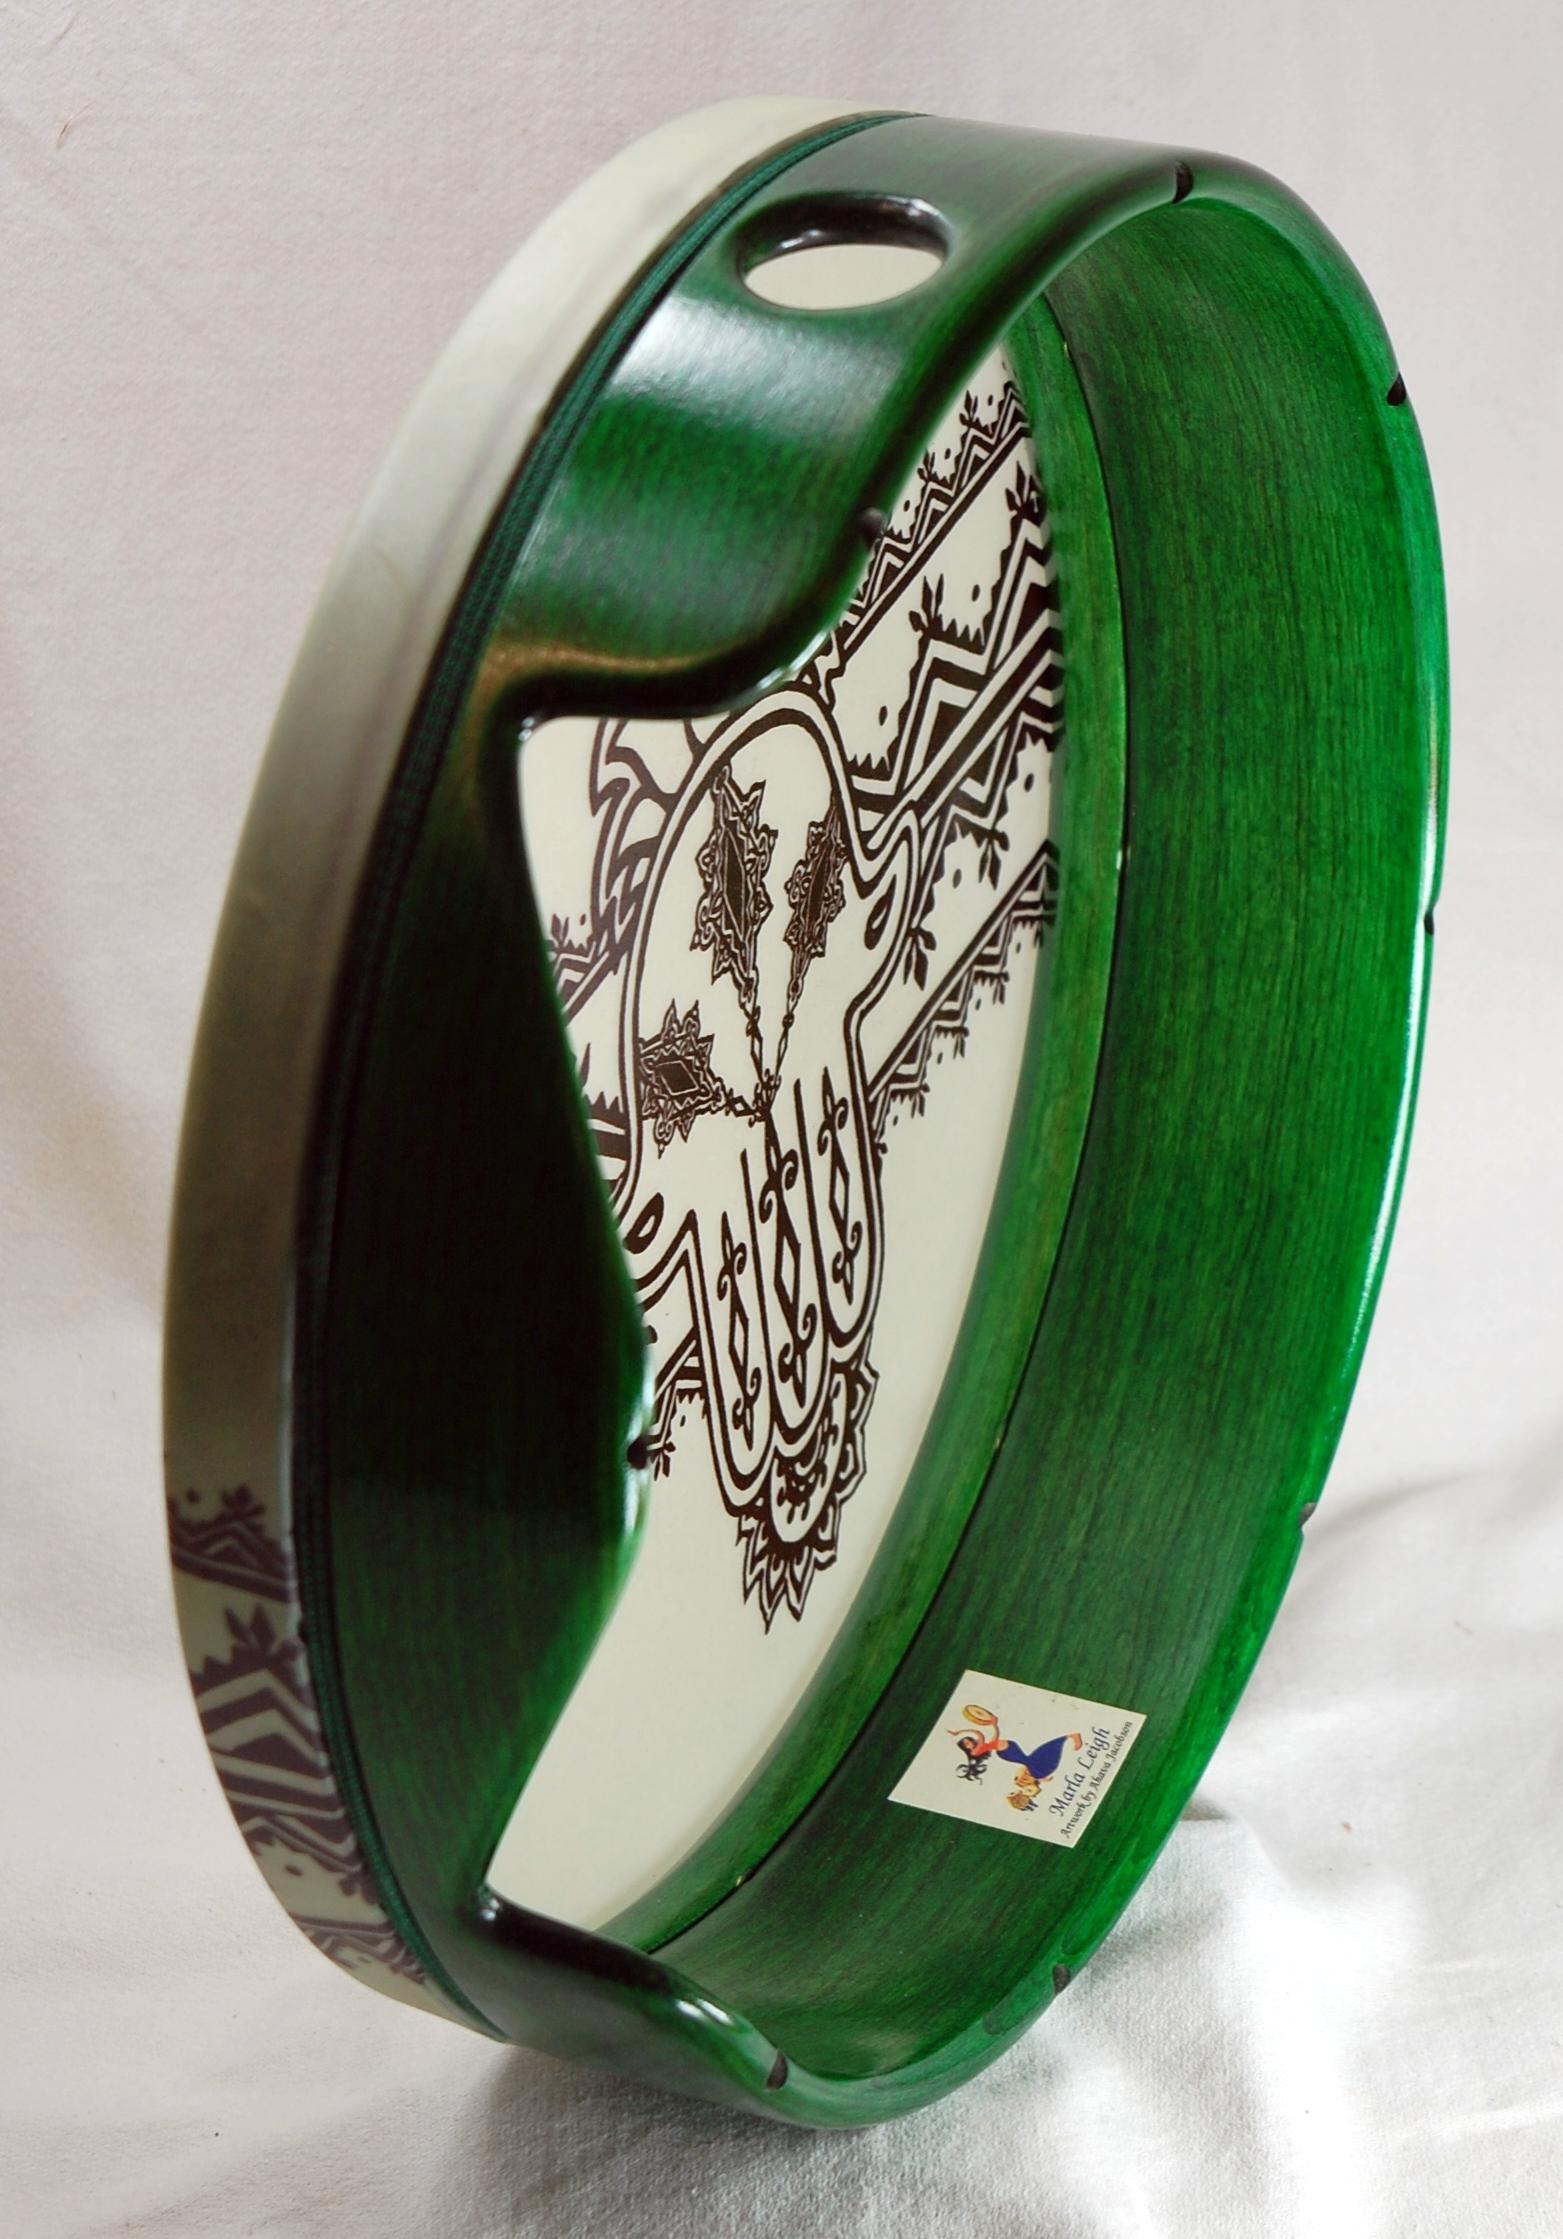 d7a8290a73108 The 14″ Green Goddess model offers a lighter and even more portable version  of the original Marla Tar 16″ drum. The smaller diameters defines a  slightly ...